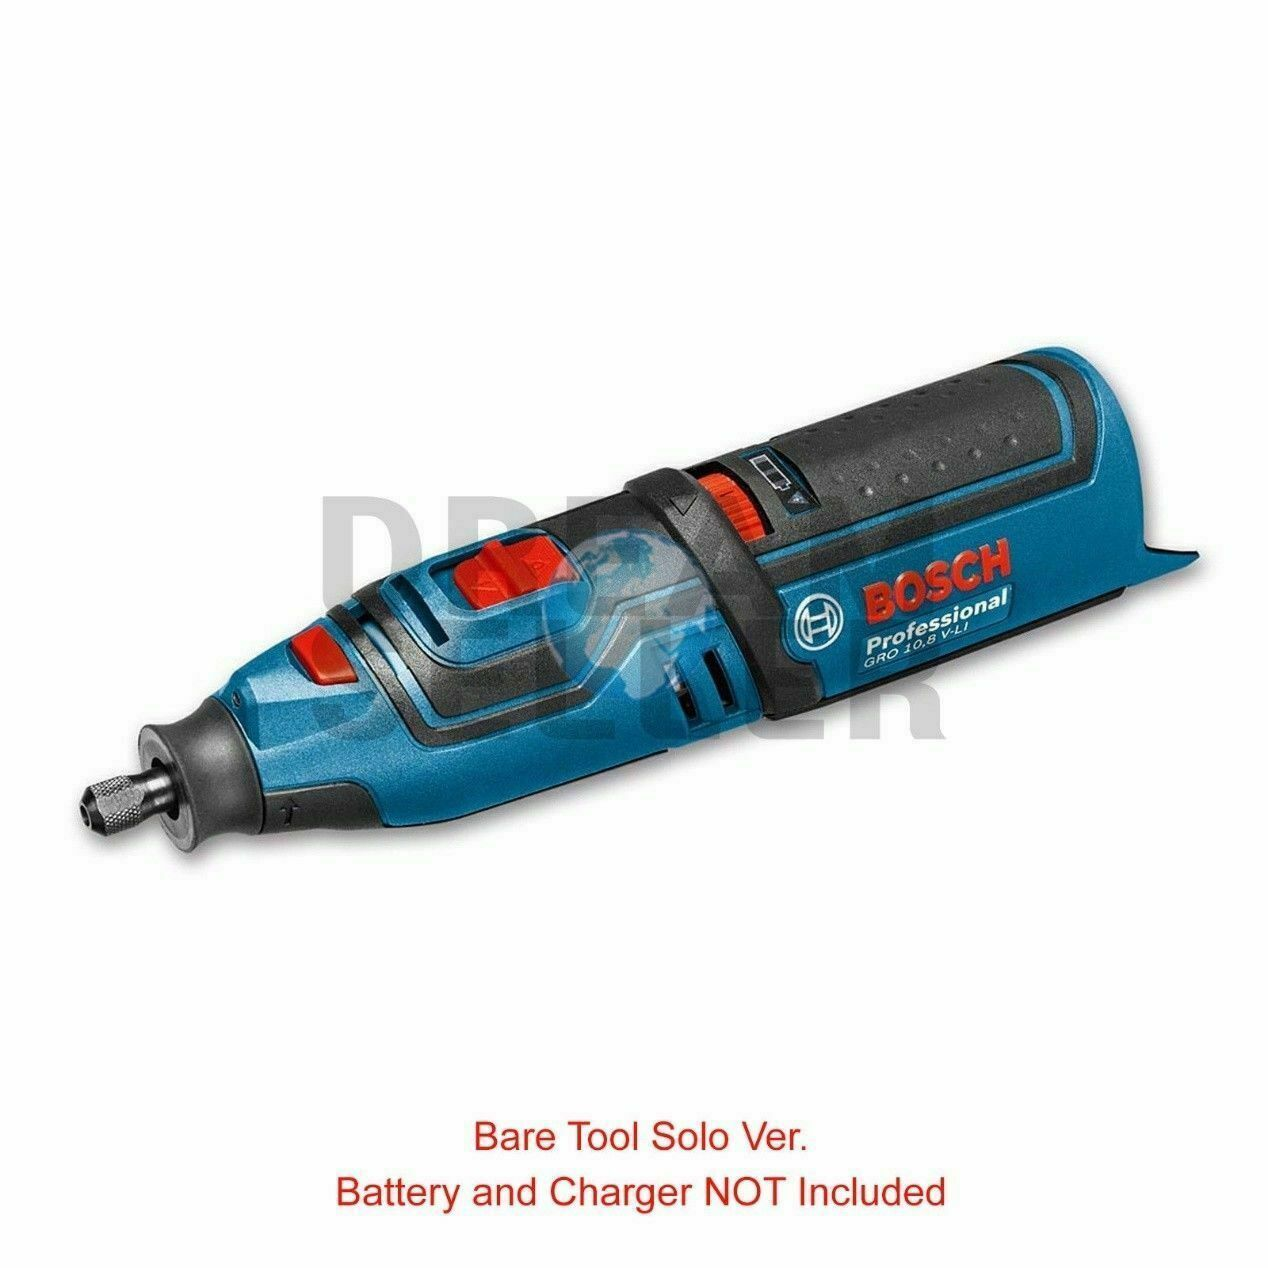 Bosch GRO 10.8V-LI Professional Cordless Rotary Multi Tool Bare Tool only body